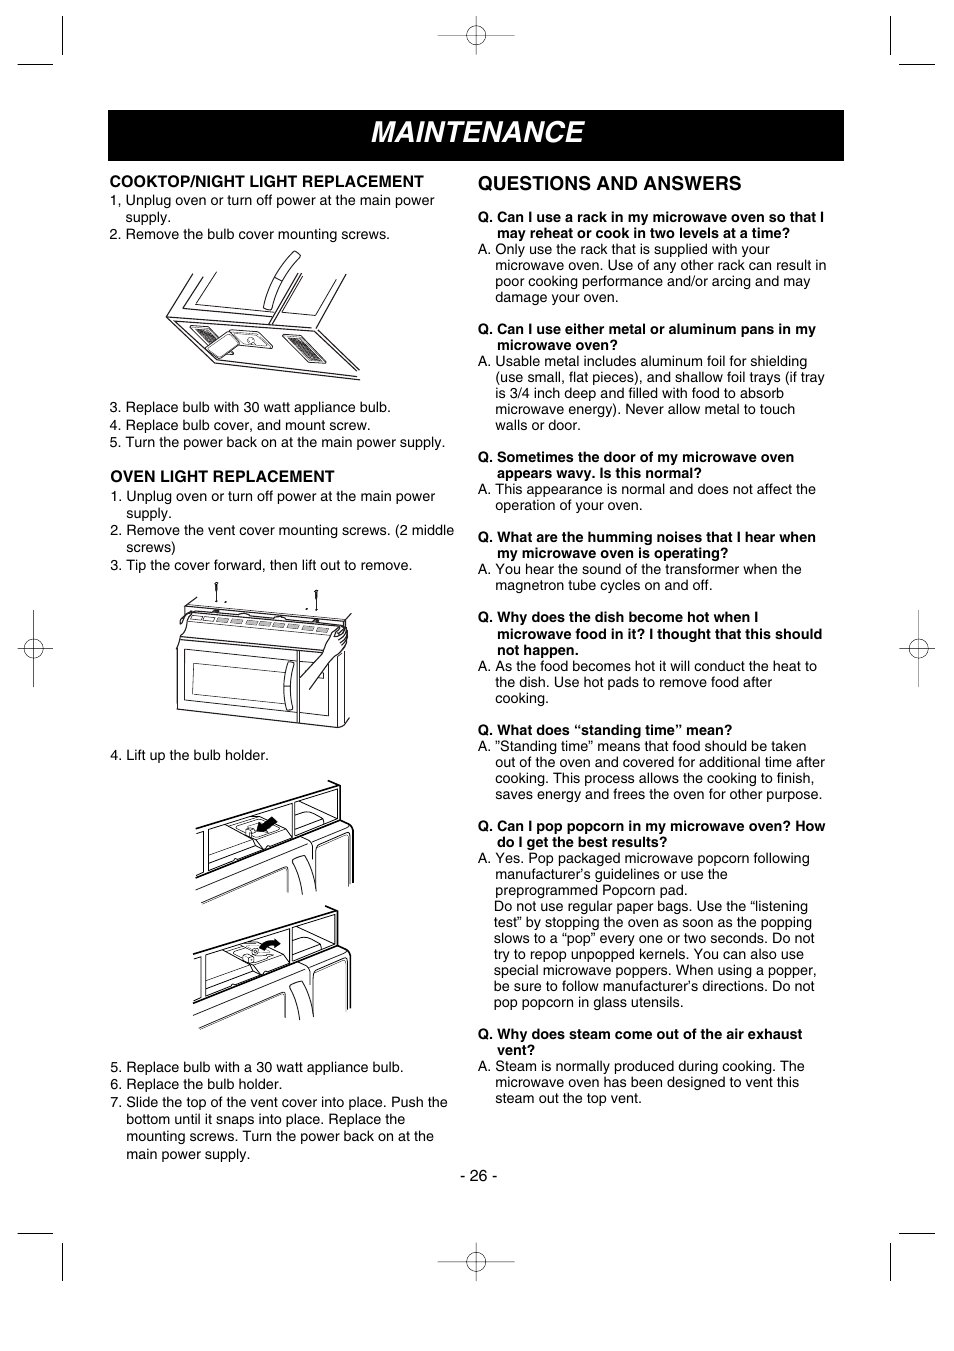 Maintenance, Questions and answers | LG LMV1680ST User Manual | Page 26 / 32